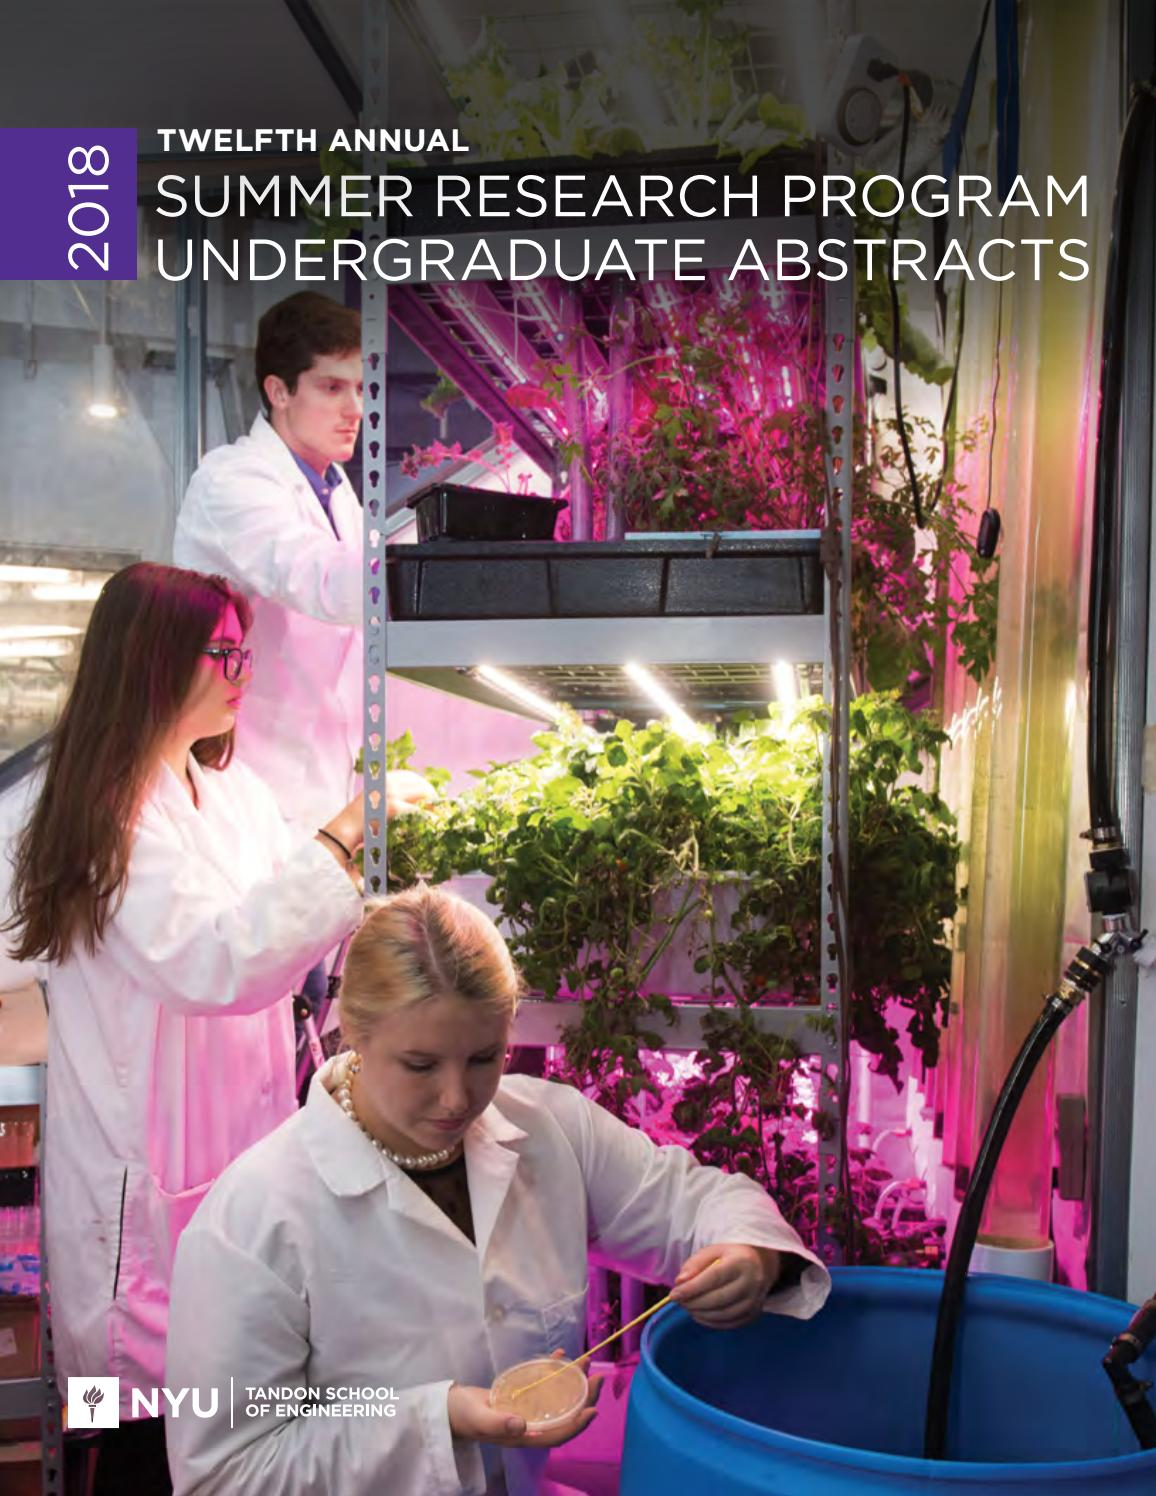 2018 Summer Research Program Undergraduate Abstracts by